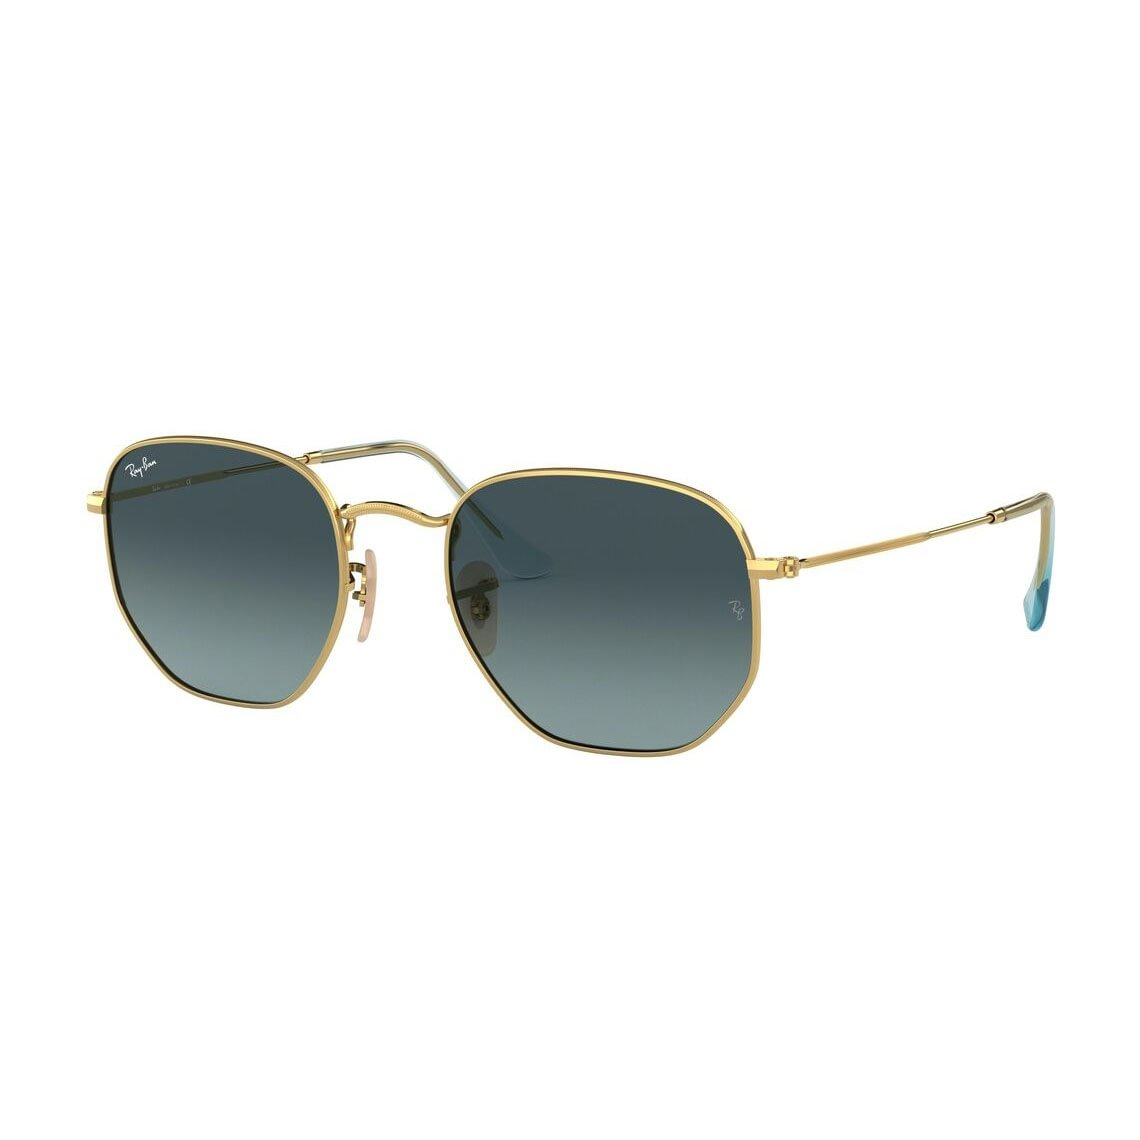 Ray-Ban Hexagonal Flat Lenses RB3548N 91233M 4821